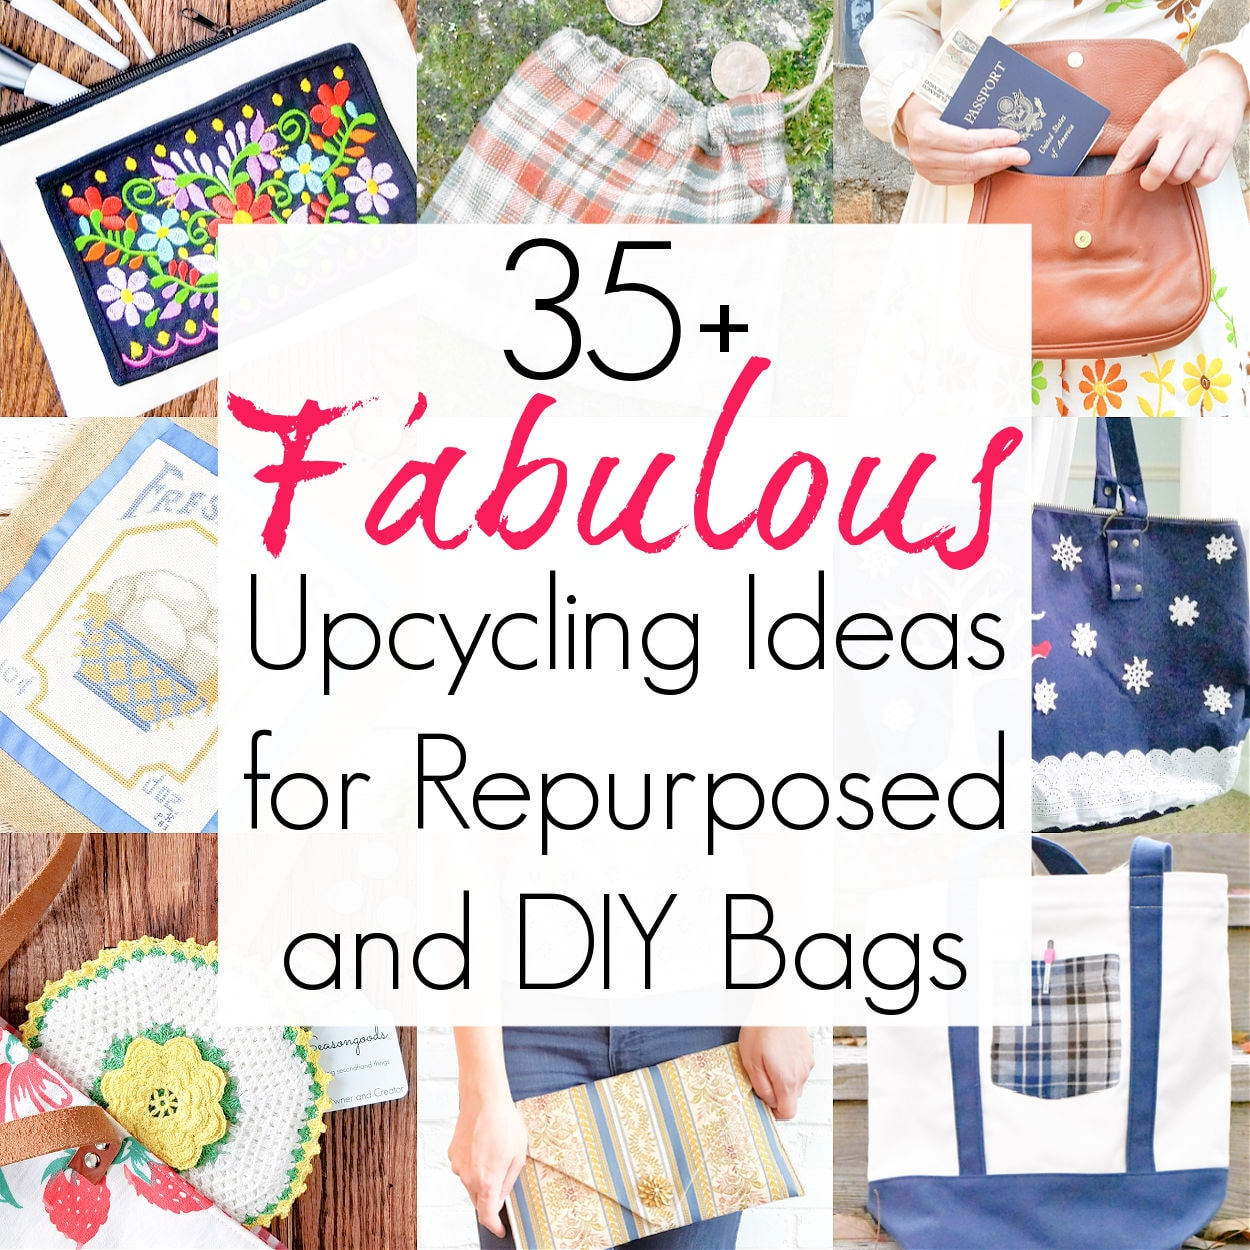 35+ Upcycling Ideas for DIY Bags